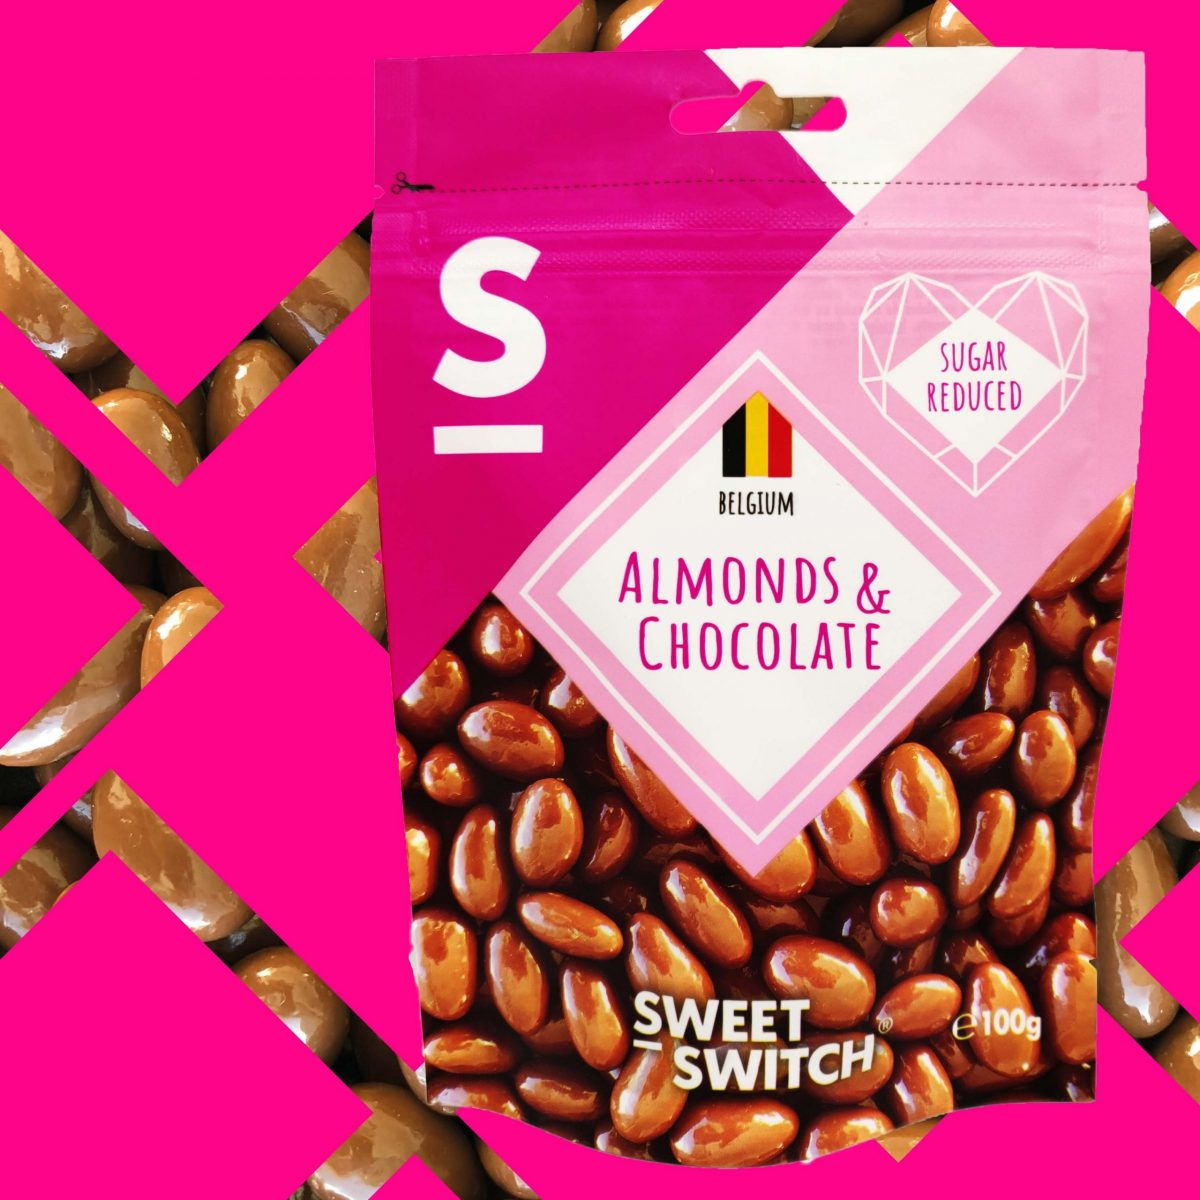 003 Almonds & chocolate SWEET-SWITCH